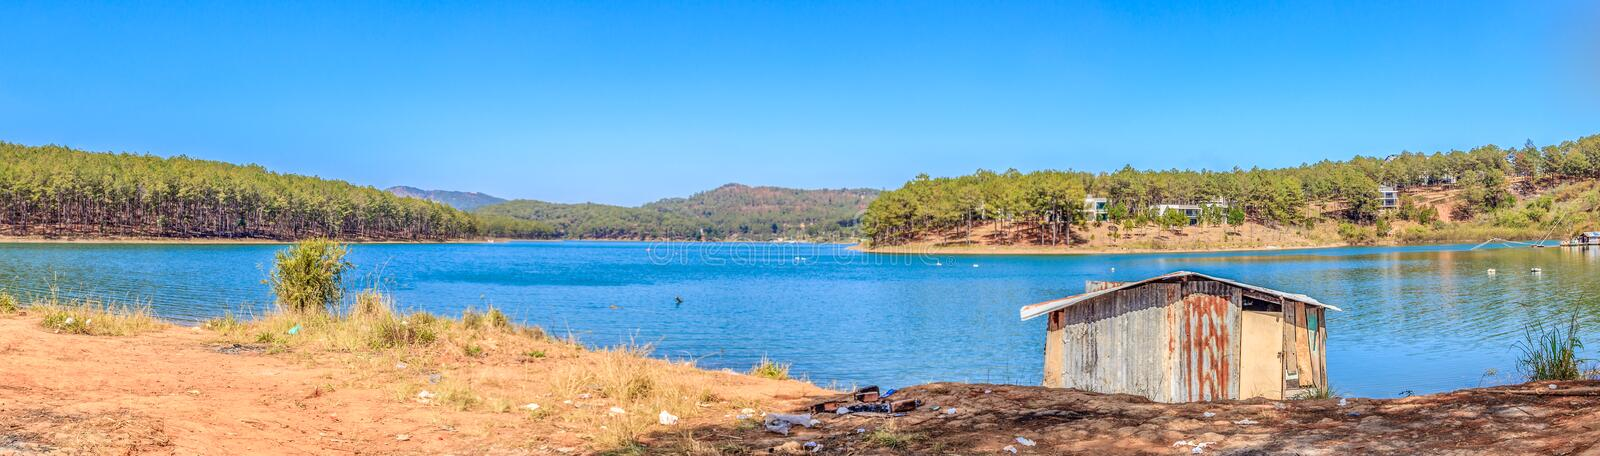 Tuyen Lam Lake - Da Lat. Tuyen Lam Lake is a lake in the city of Da Lat, Lam province. It is the largest freshwater lake in Da Lat, with an area of about 320 stock photo